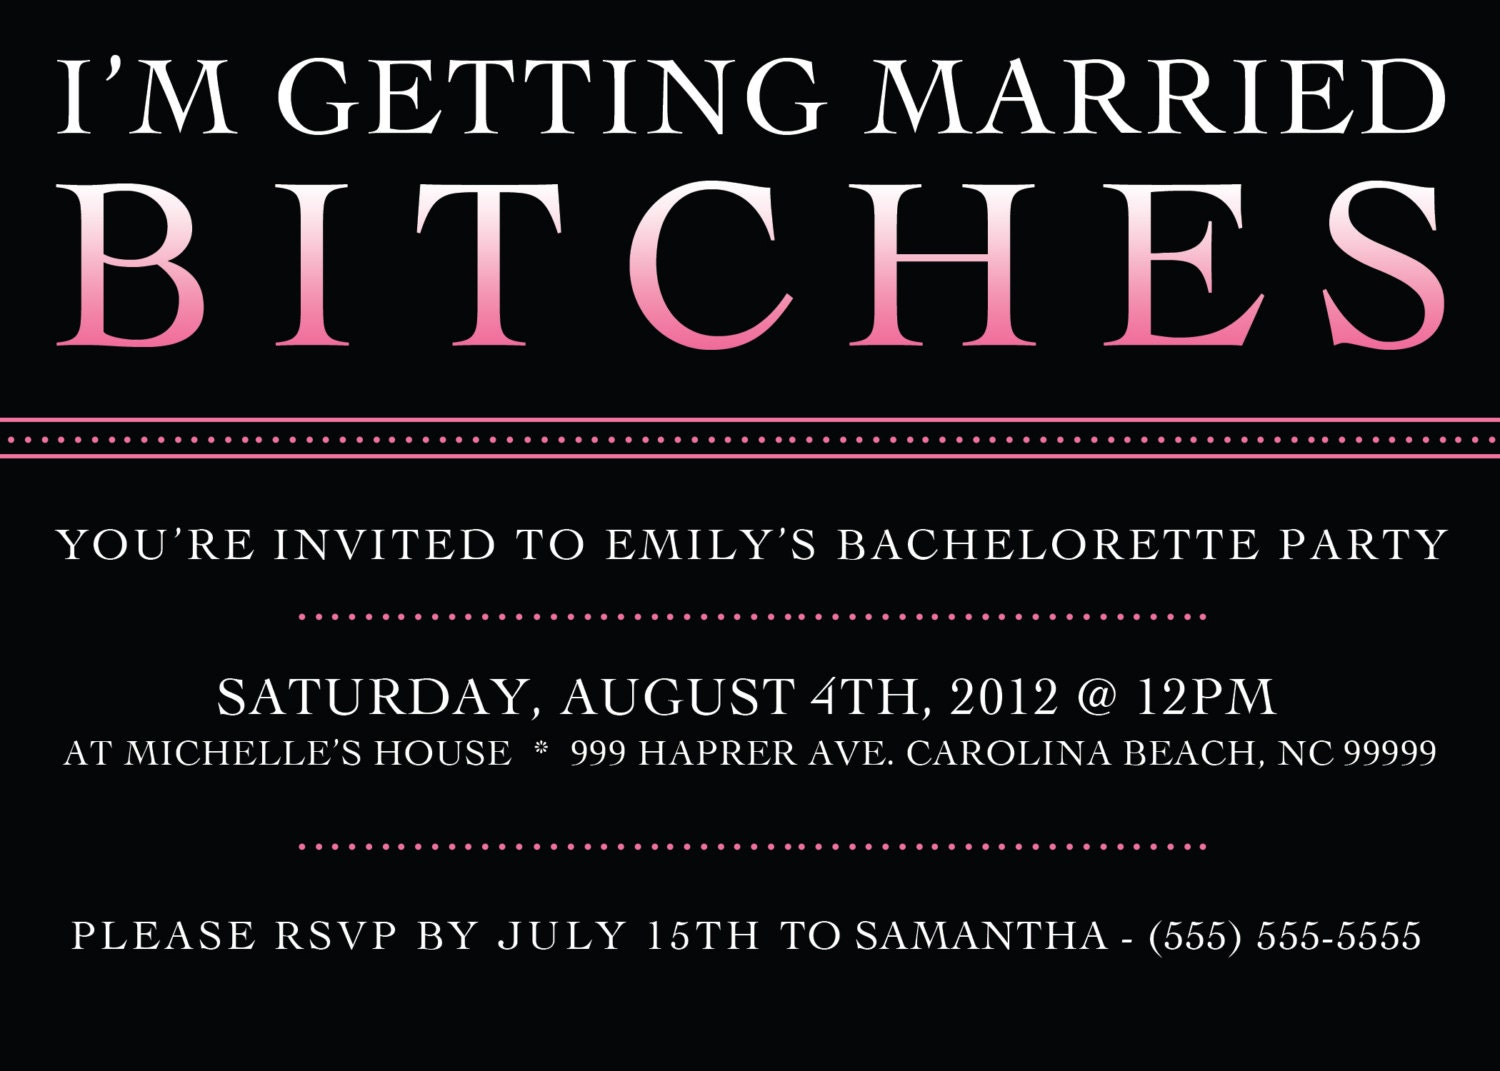 Etsy Bachelorette Party Invitations - Free Printable Invitation ...